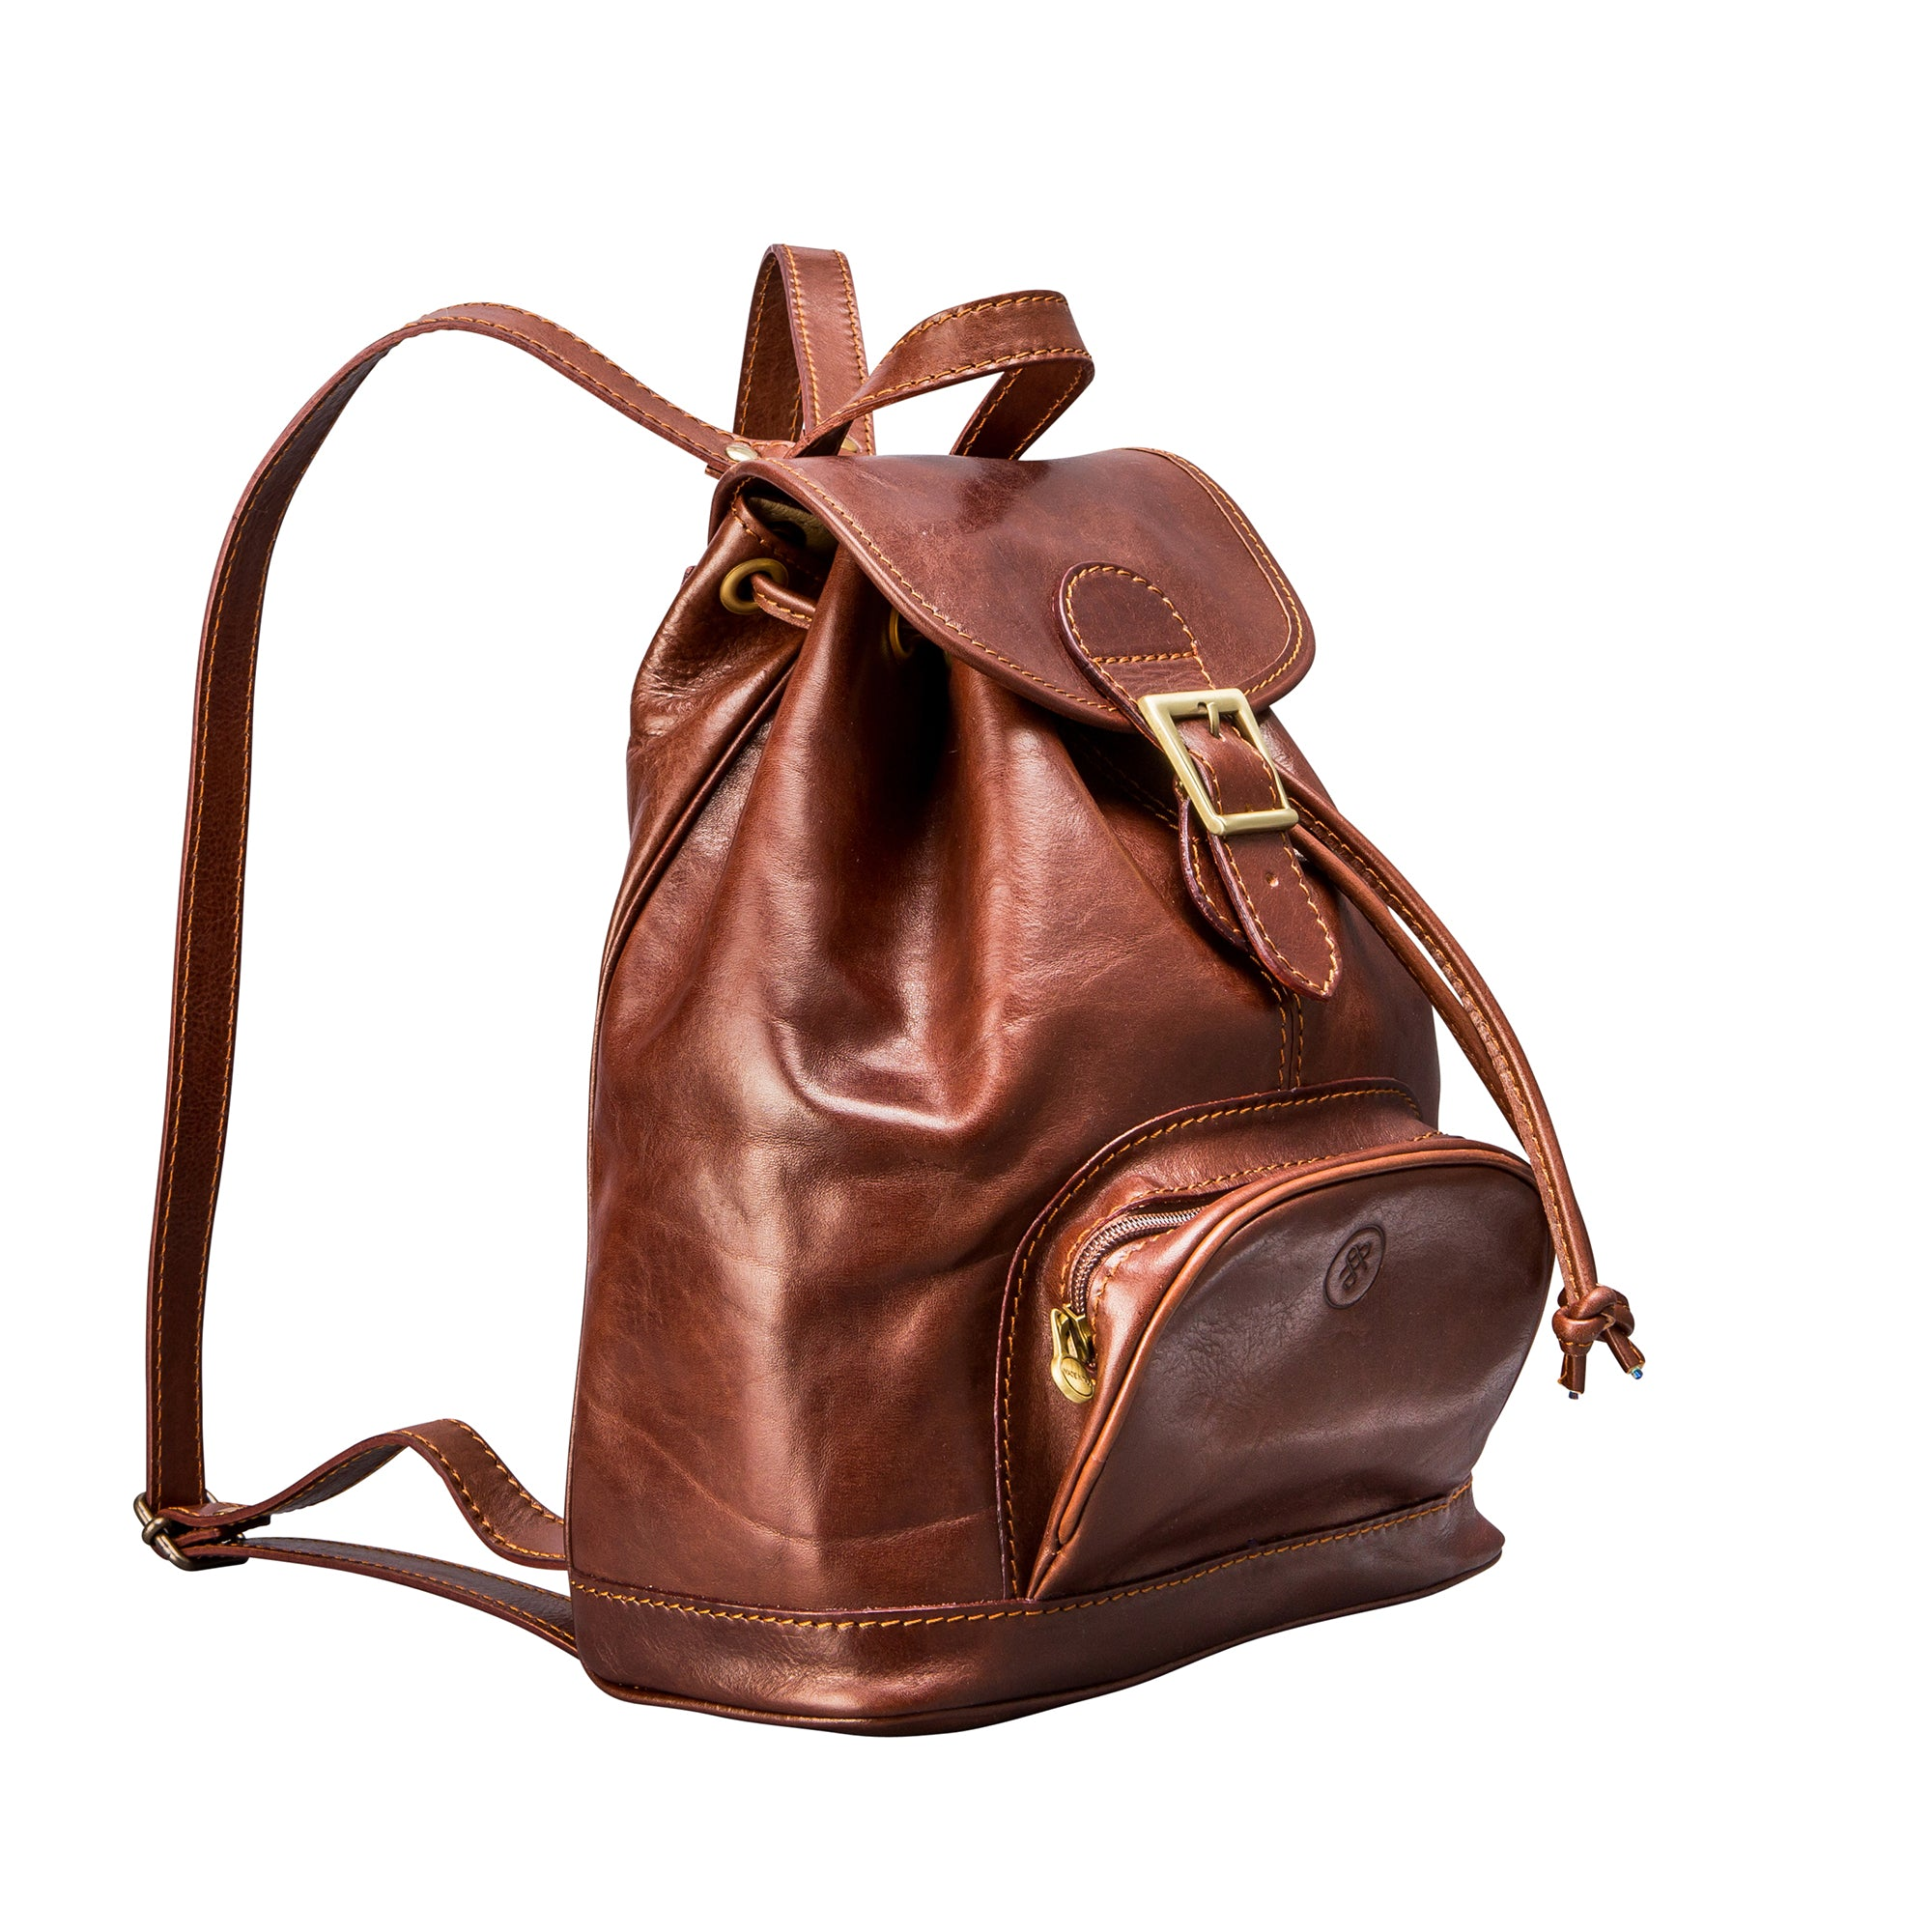 Image 2 of the 'Sparano' Chestnut Veg-Tanned Leather Backpack